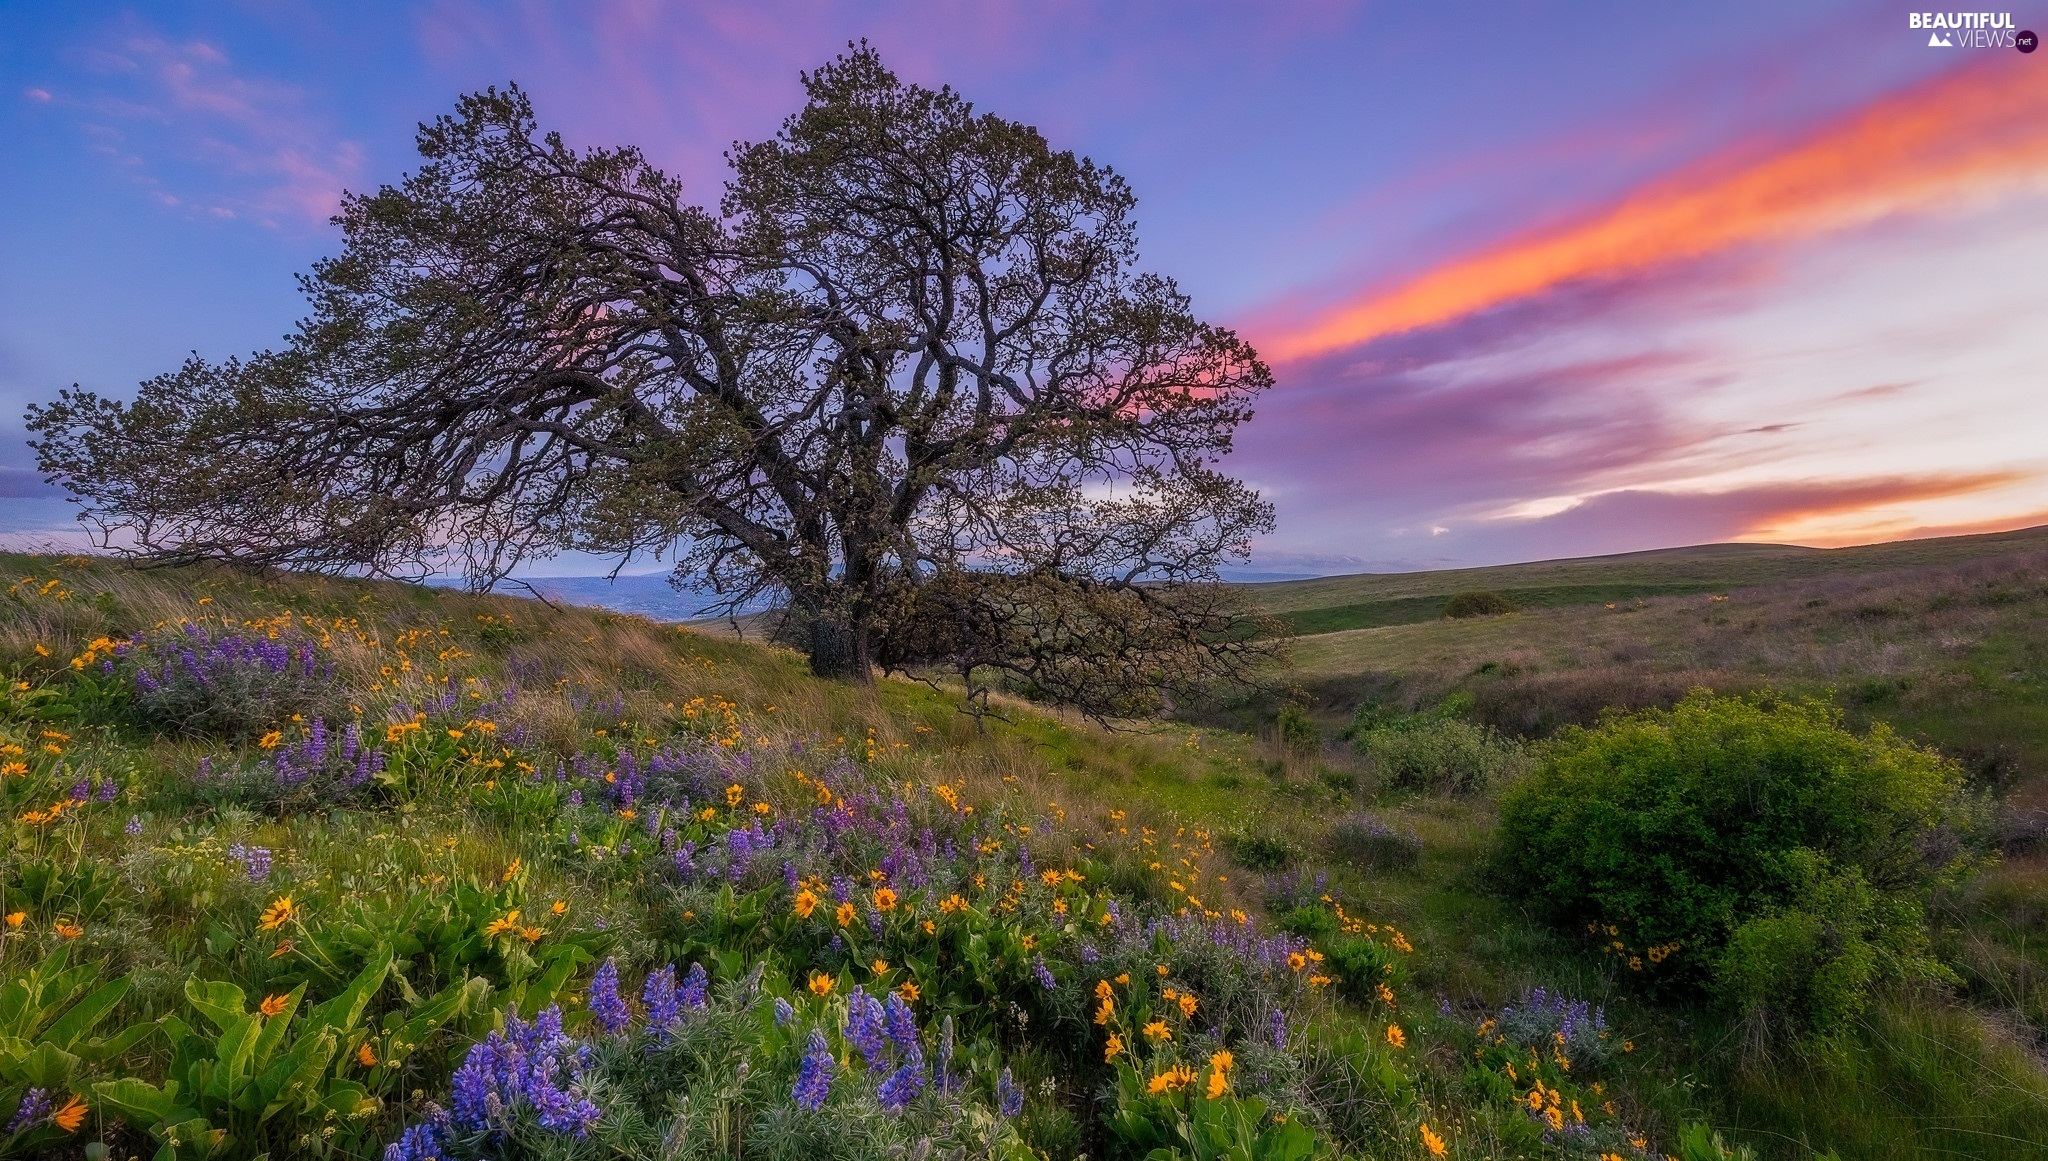 Great Sunsets, Flowers, trees, Meadow